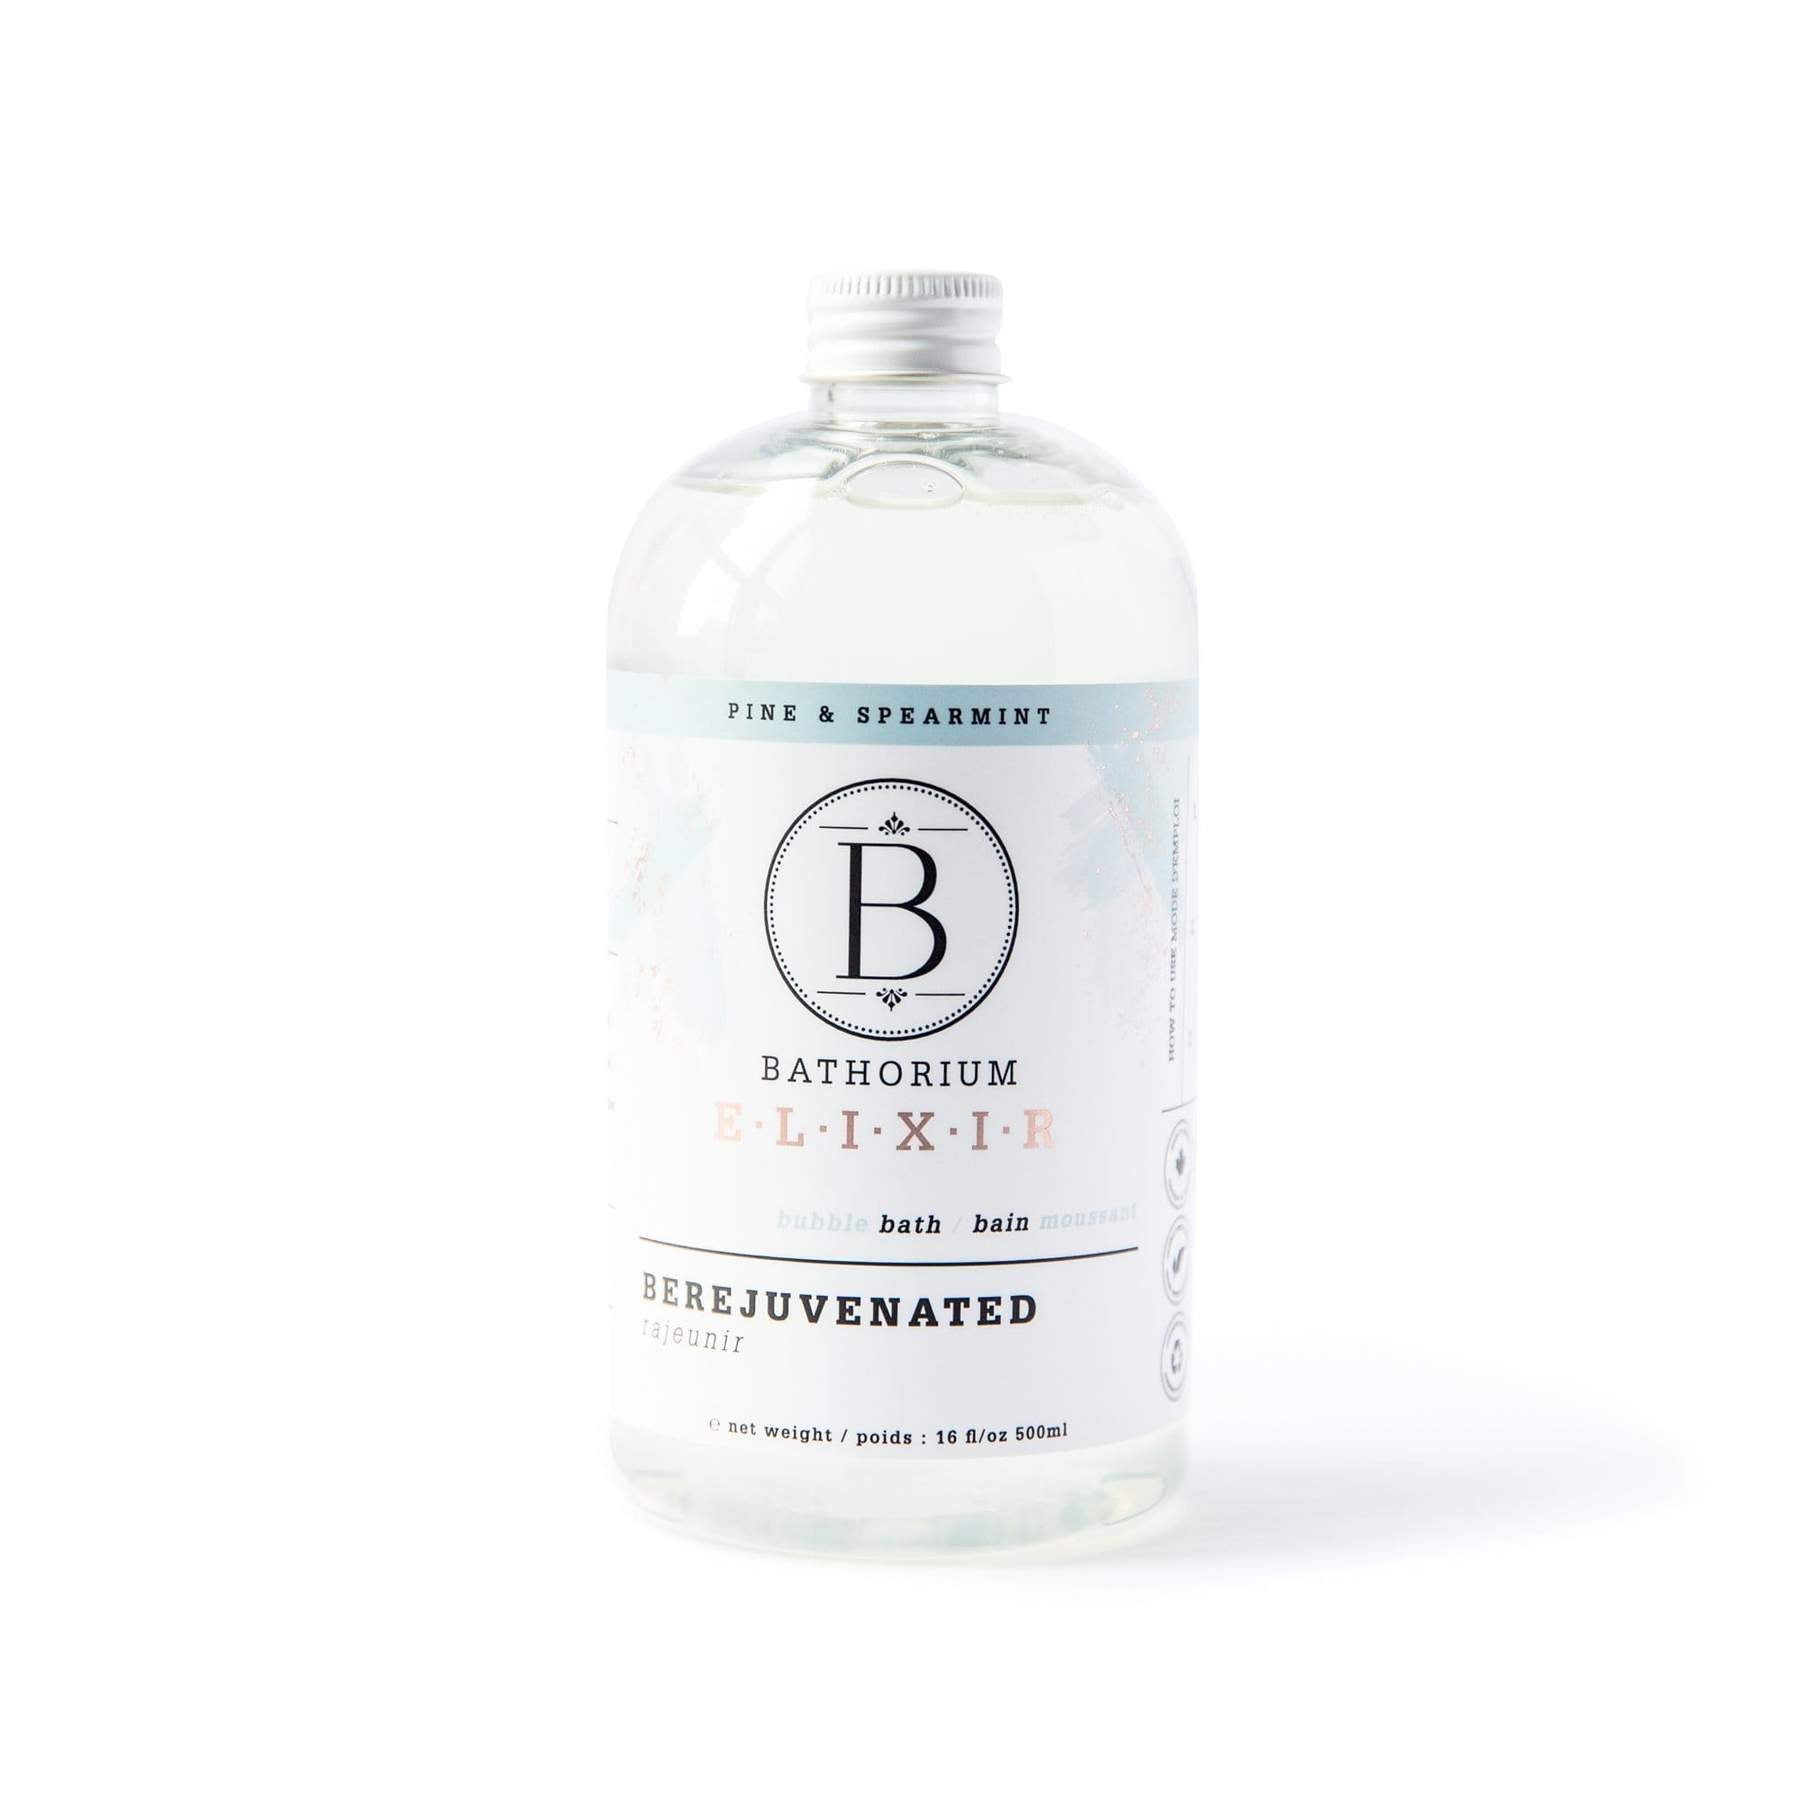 PINE, CEDARWOOD AND PEPPERMINT BUBBLE BATH OIL